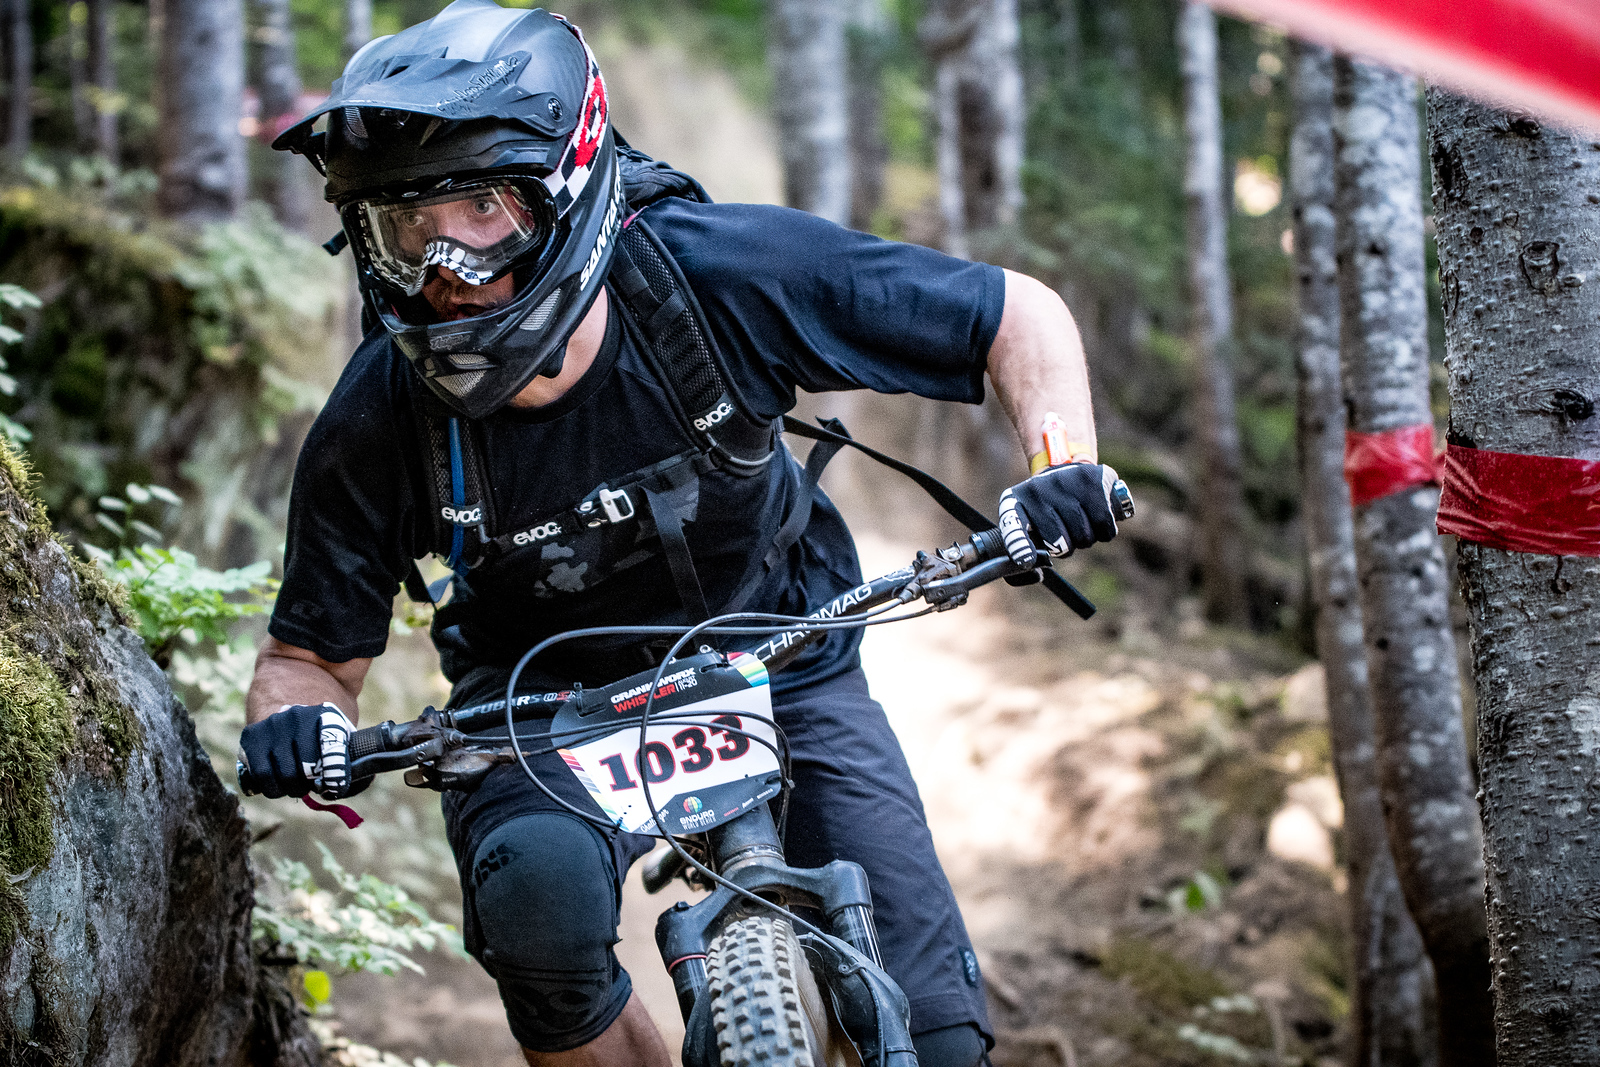 Petr Cagasek. Bell Helmets Canadian Open Challenger Enduro presented by CamelBak. Crankworx Whistler 2017. Photo by: Scott Robarts